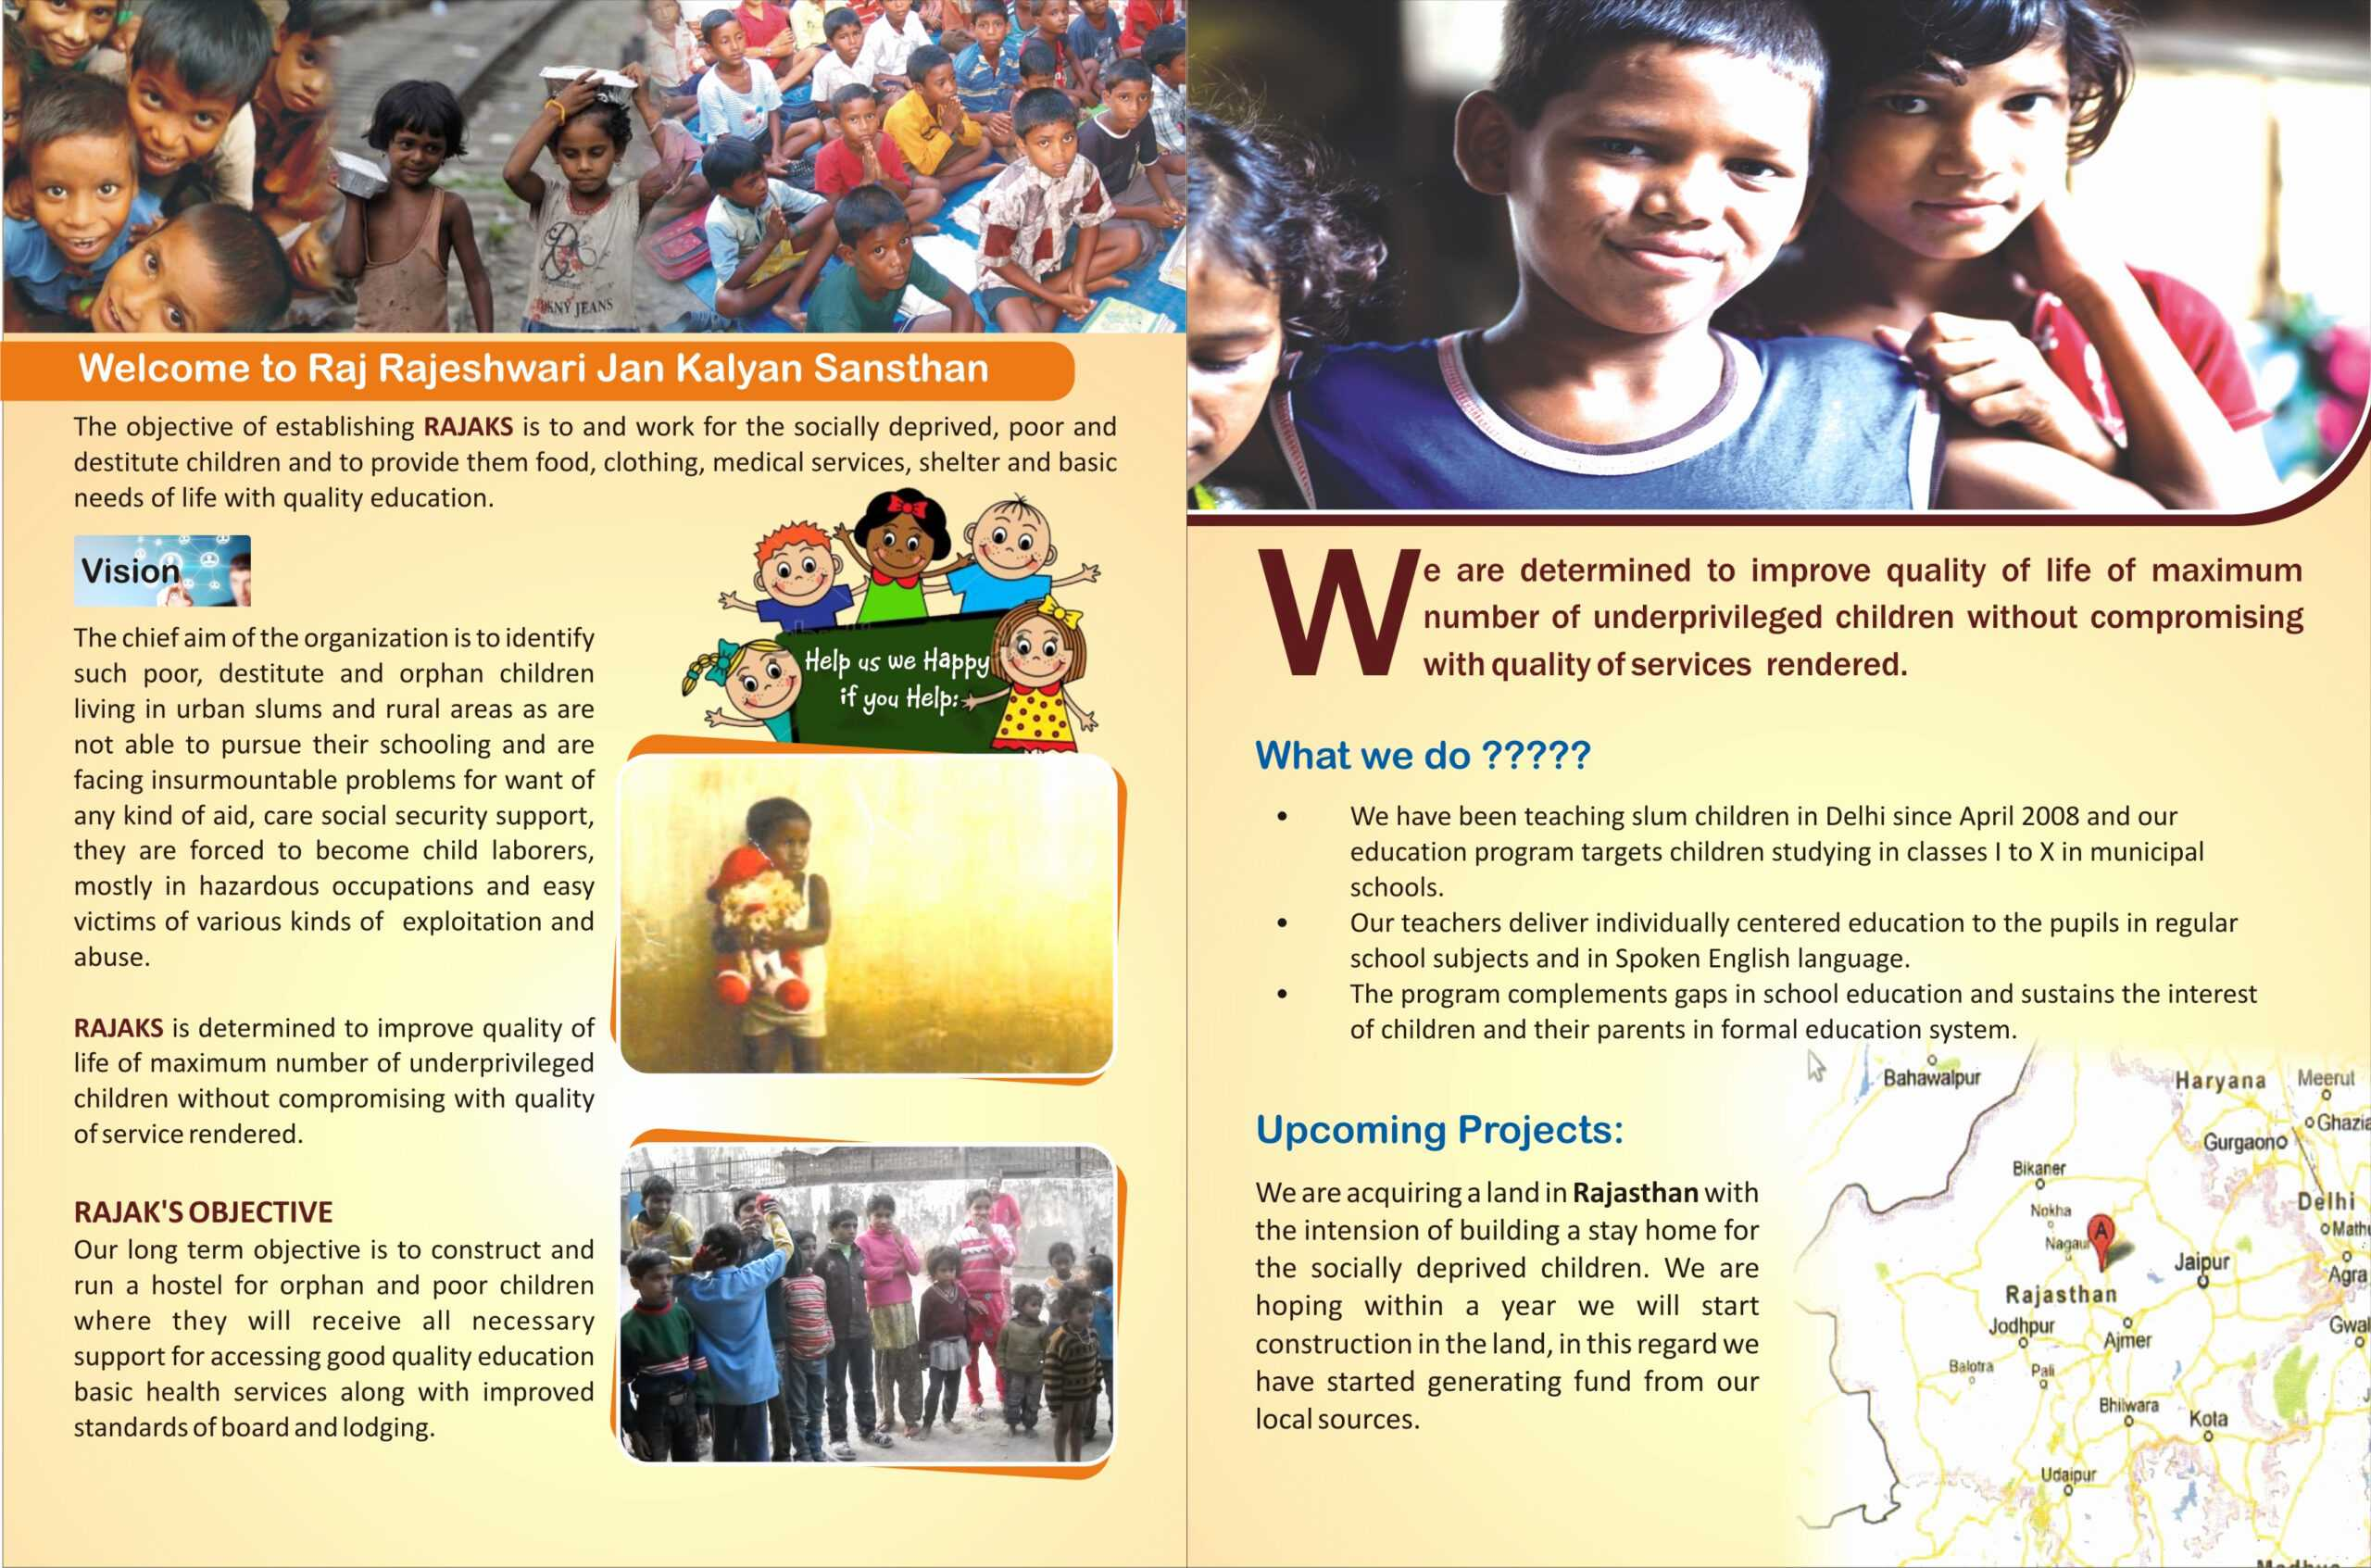 Ngo Brochure Templates Sample Flyers For Organizations 25 With Ngo Brochure Templates